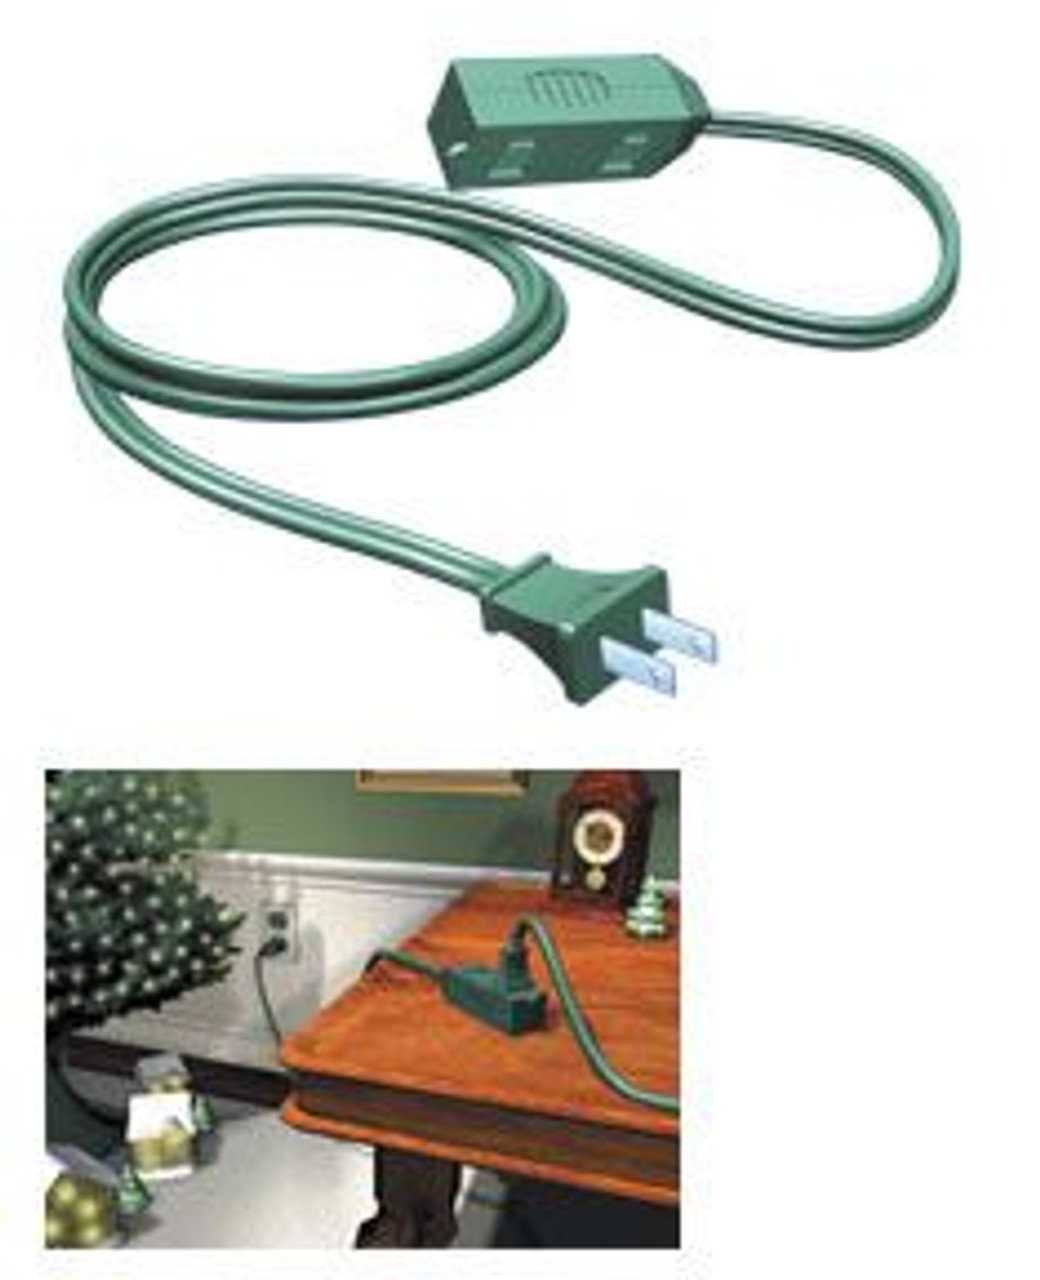 Westinghouse Green 3-Outlet Indoor Extension Power Cord - 9' - 11260339